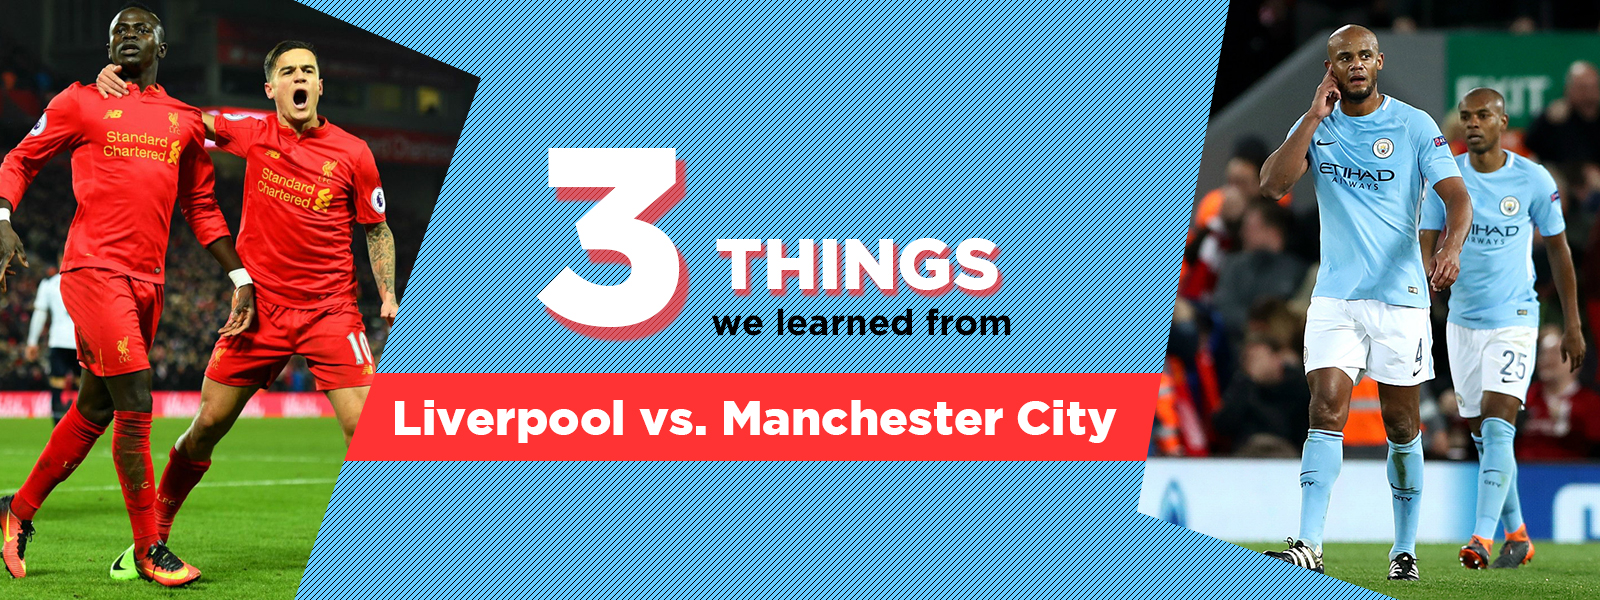 Three Things We Learned From Liverpool vs. Manchester City